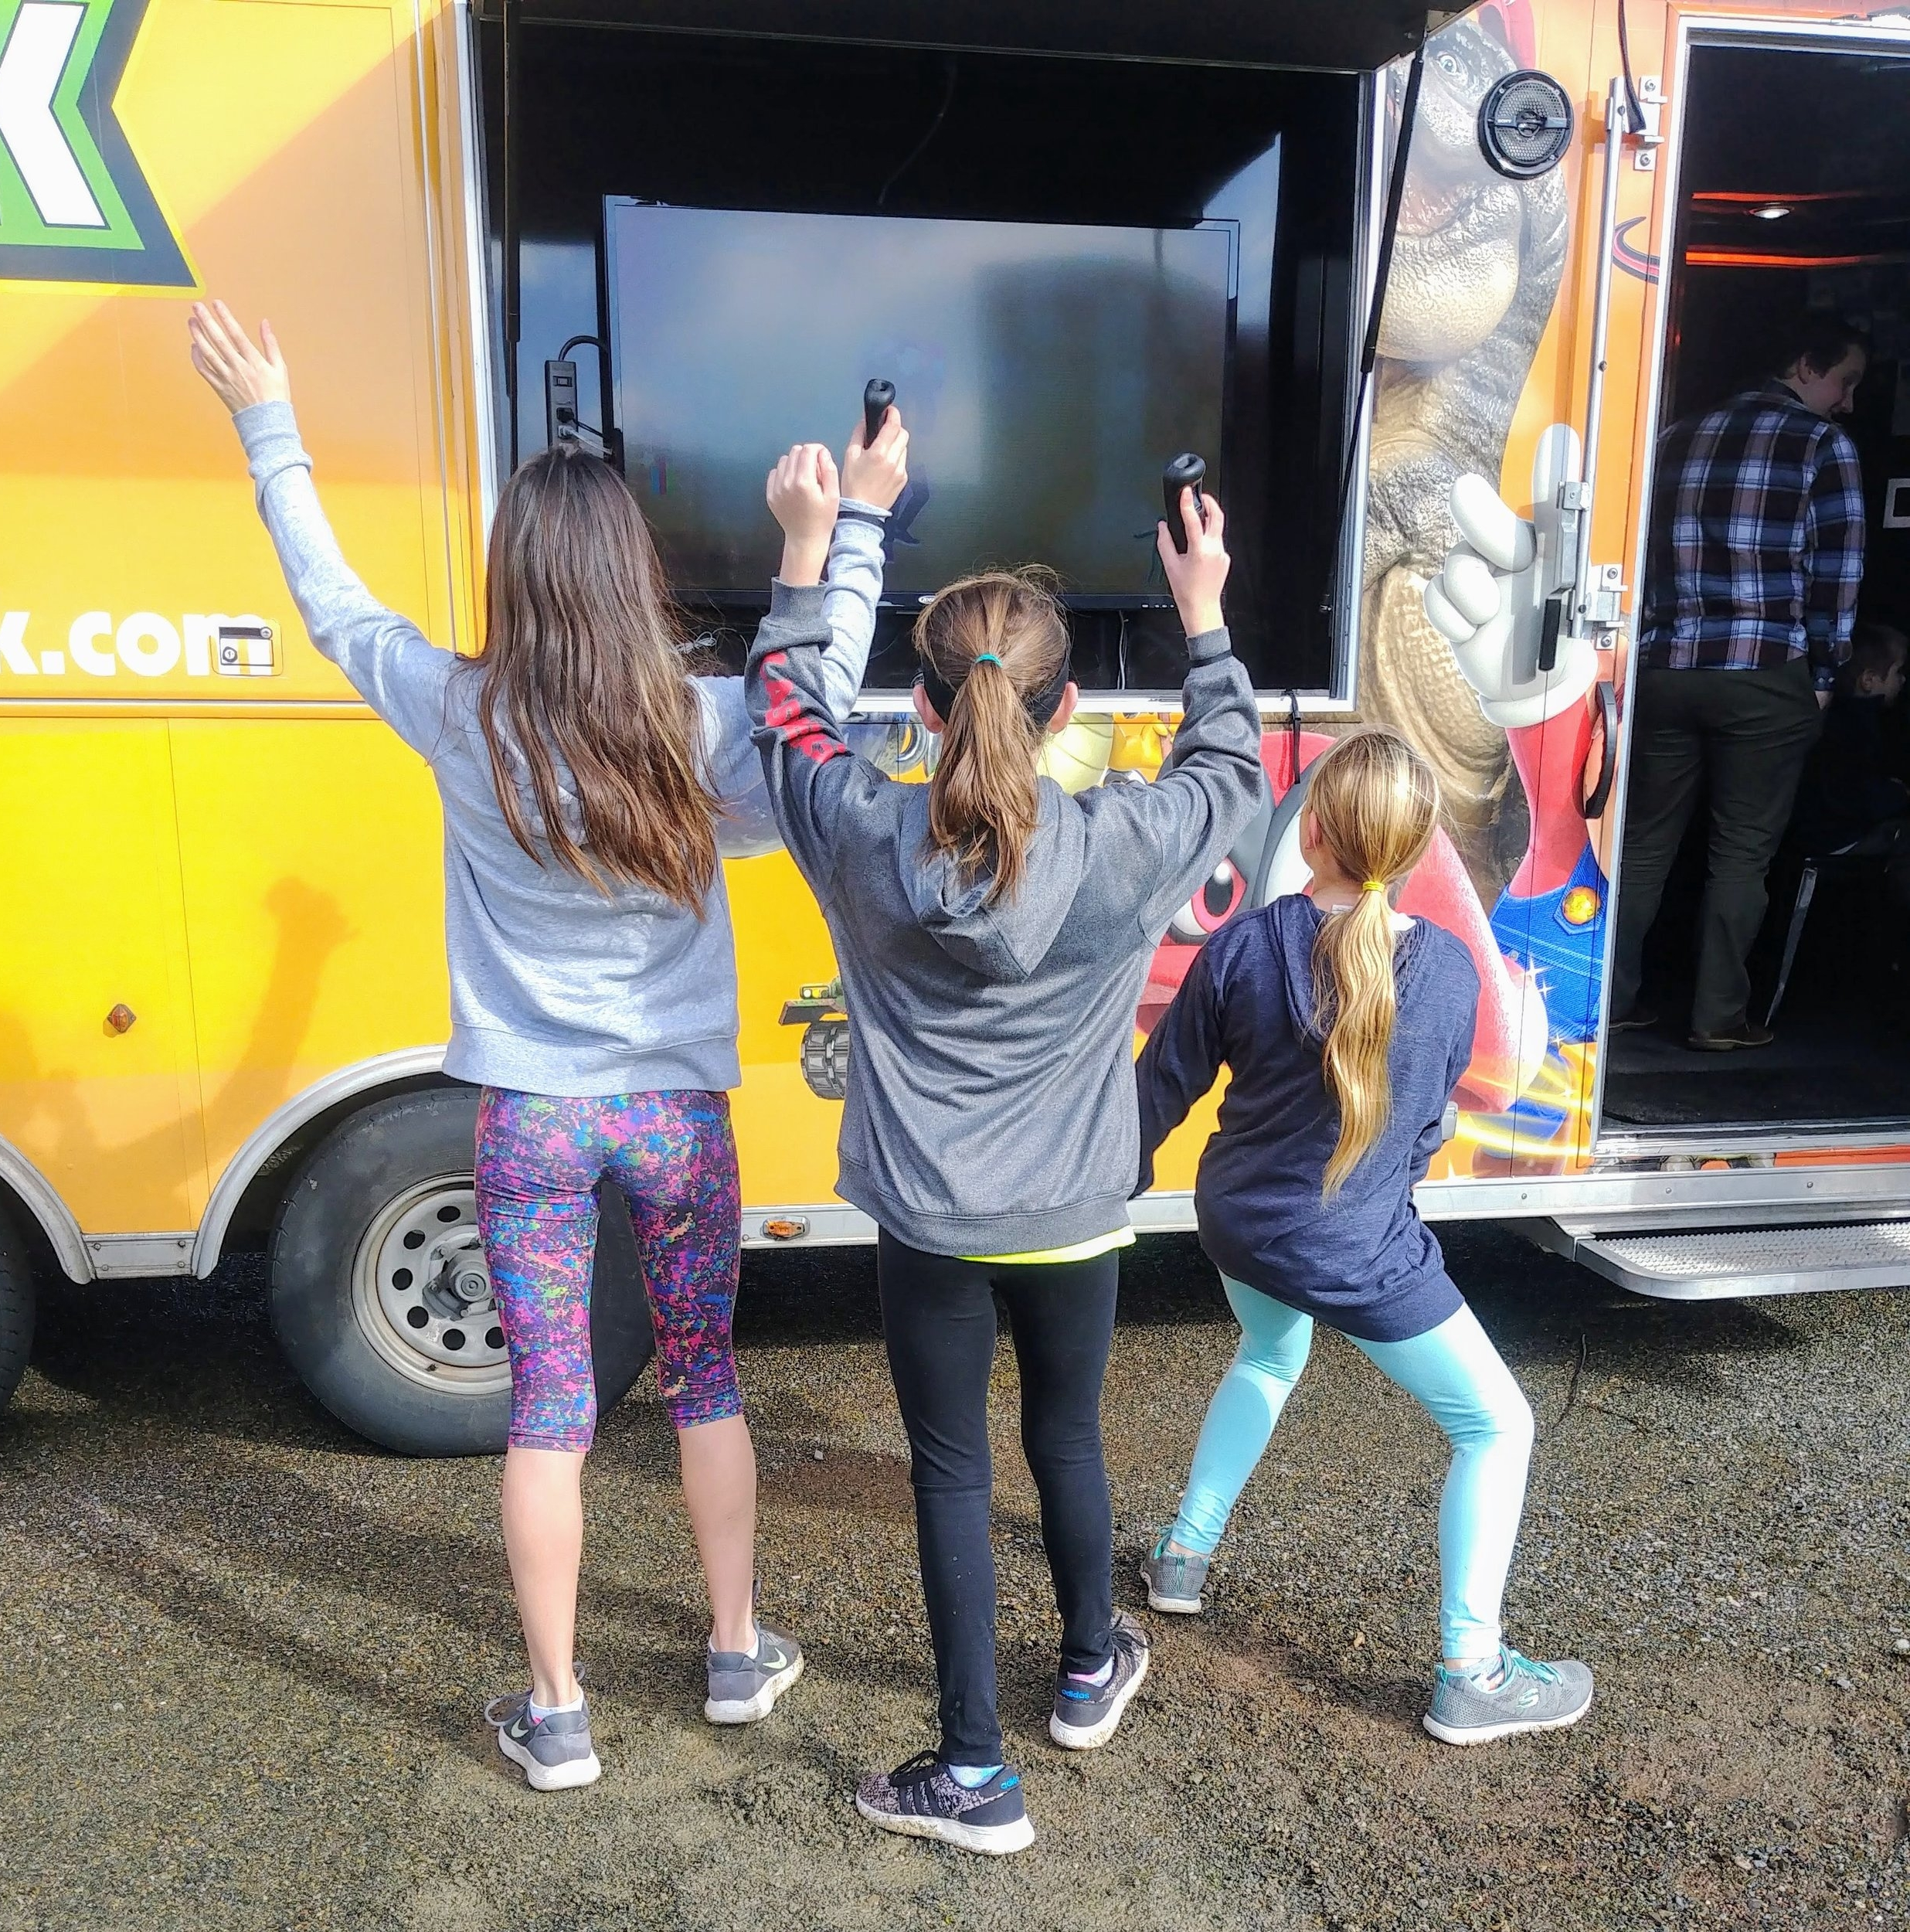 Enjoy video games both in and outside the GameTruck!